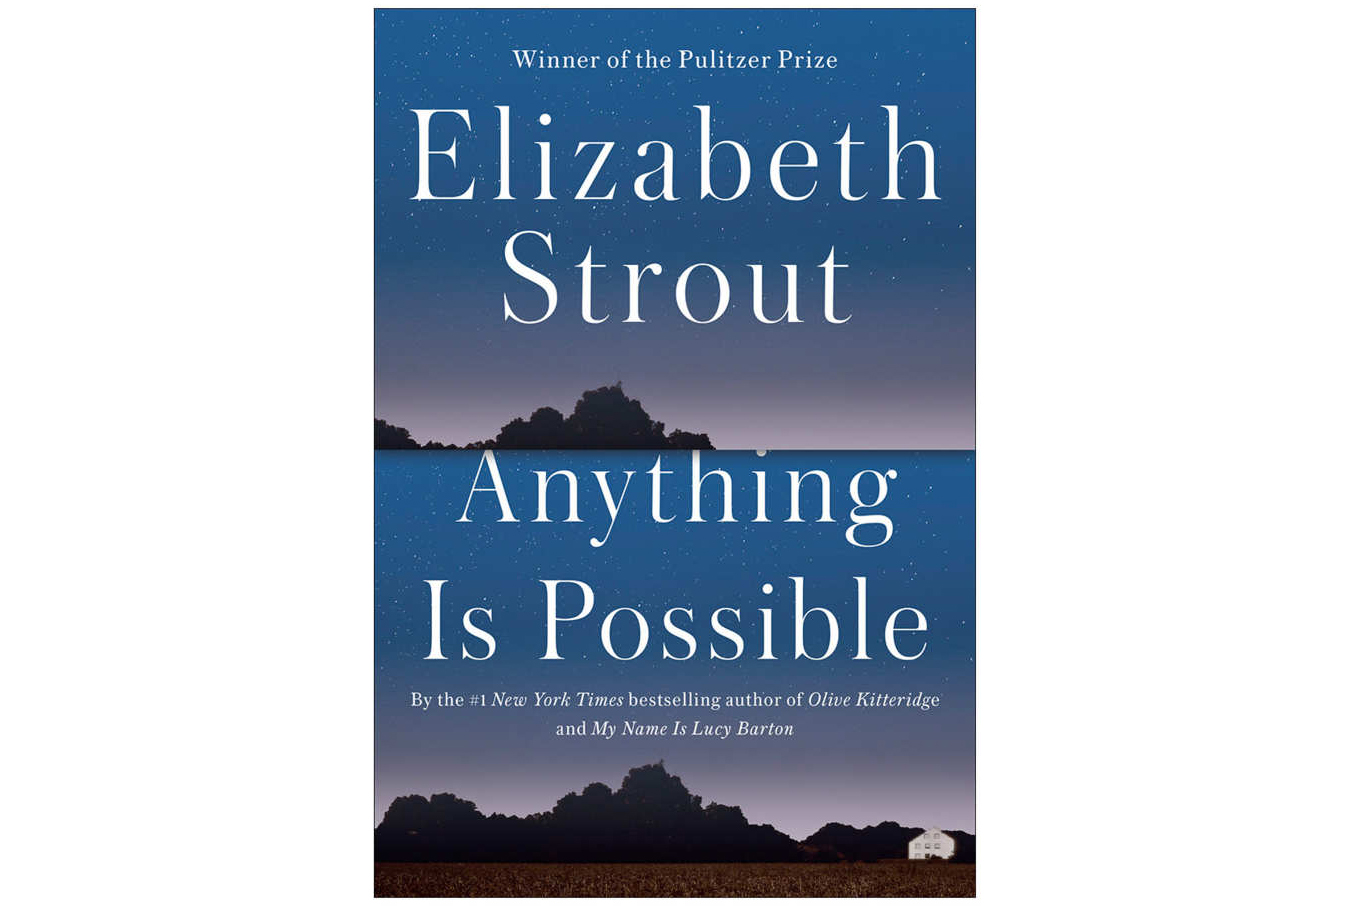 Clone of Anything Is Possible, by Elizabeth Strout